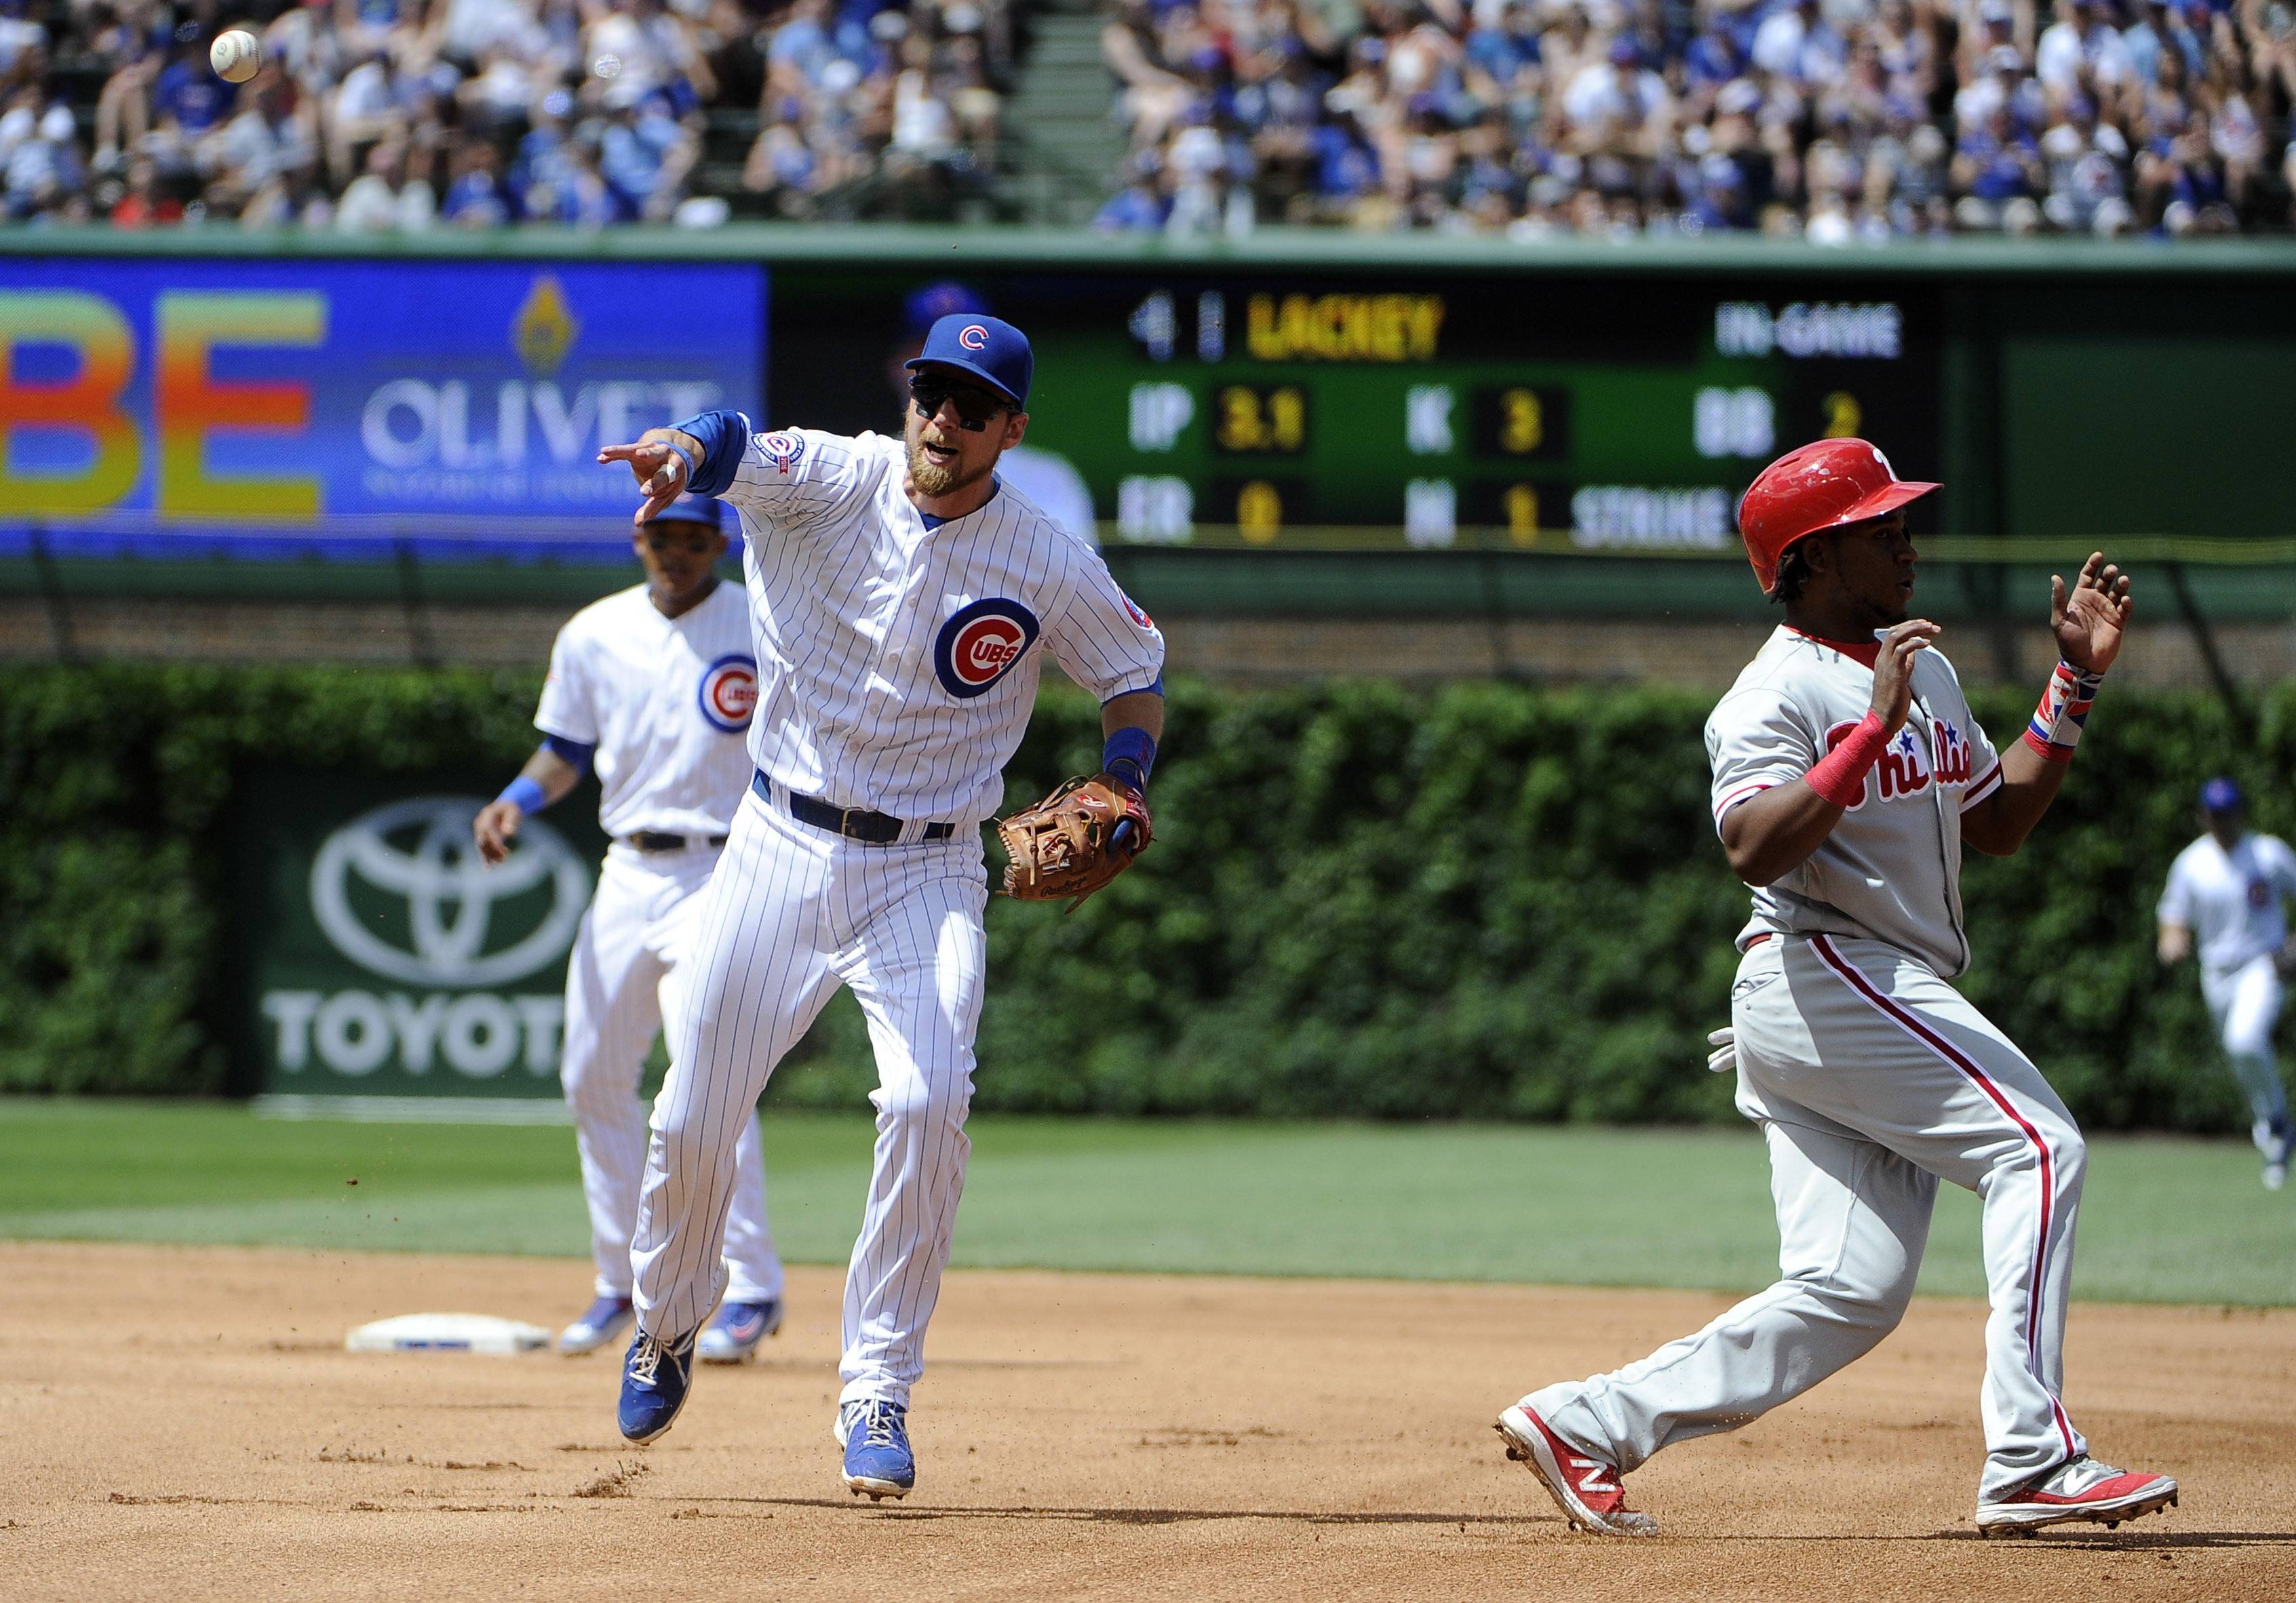 Chicago Cubs second baseman Ben Zobrist, front left, throws to first base to get Philadelphia Phillies' Tommy Joseph in a double play as Phillies' Maikel Franco, right, runs out of the base line during the fourth inning of a baseball game, Sunday, May 29, 2016, in Chicago. (AP Photo/David Banks)